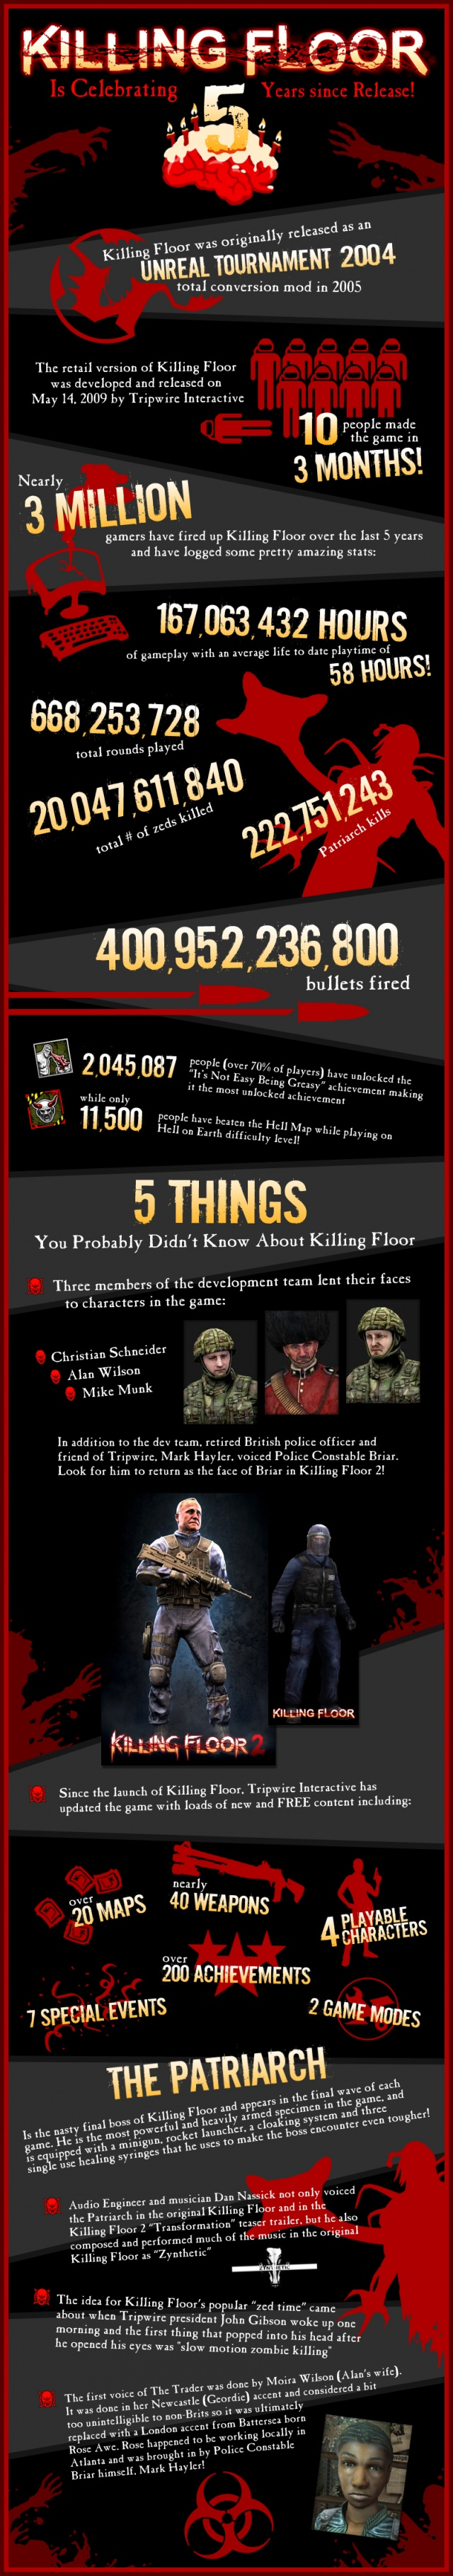 5 éves a Killing Floor